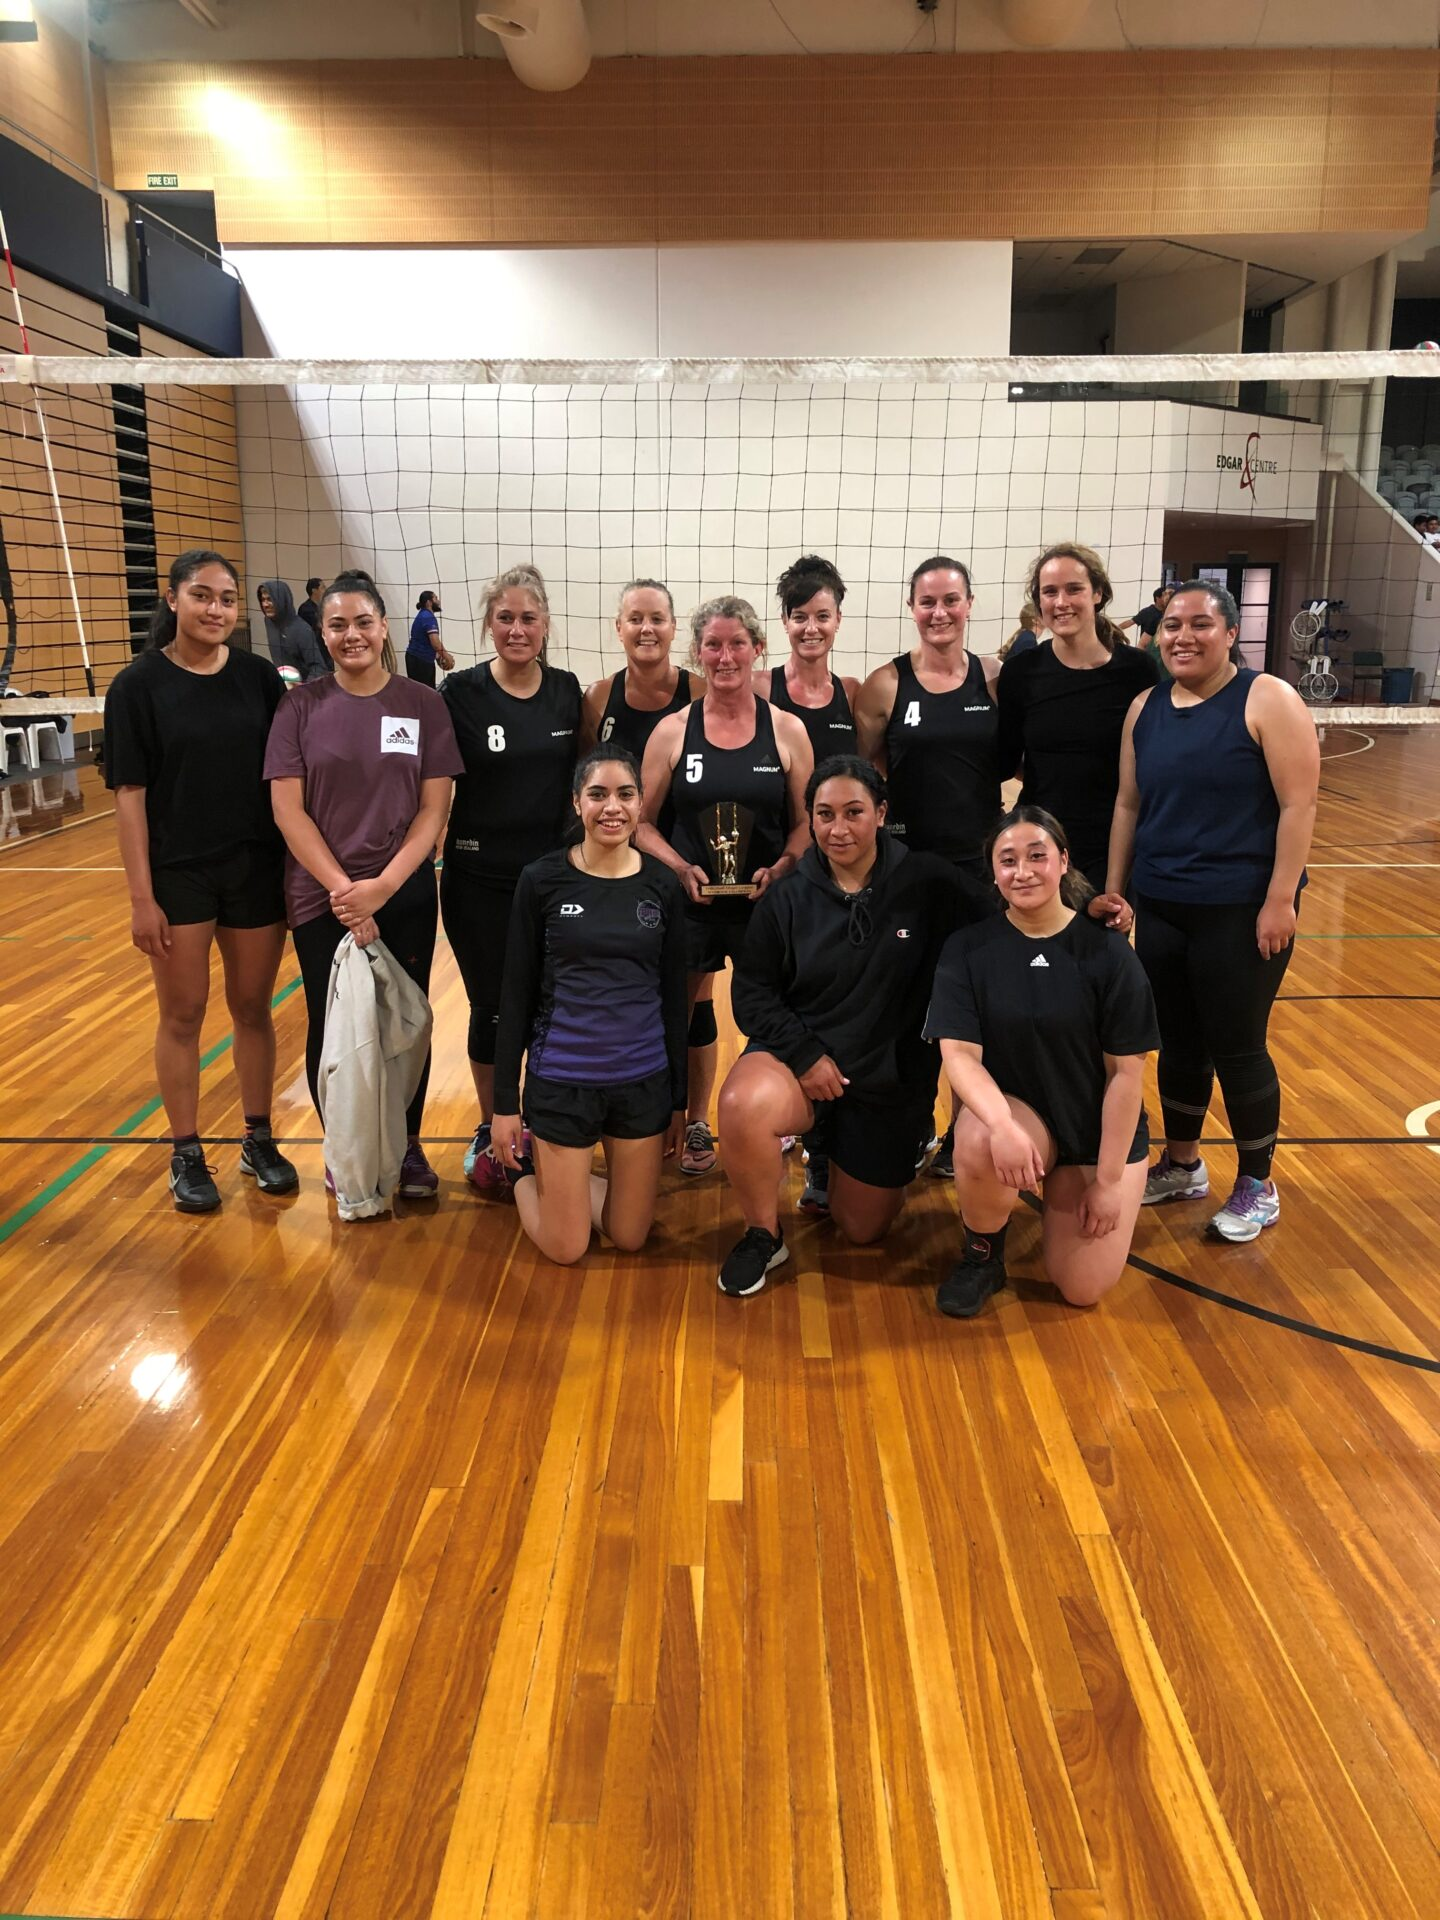 Volleyball Otago Spring League Champions 2020